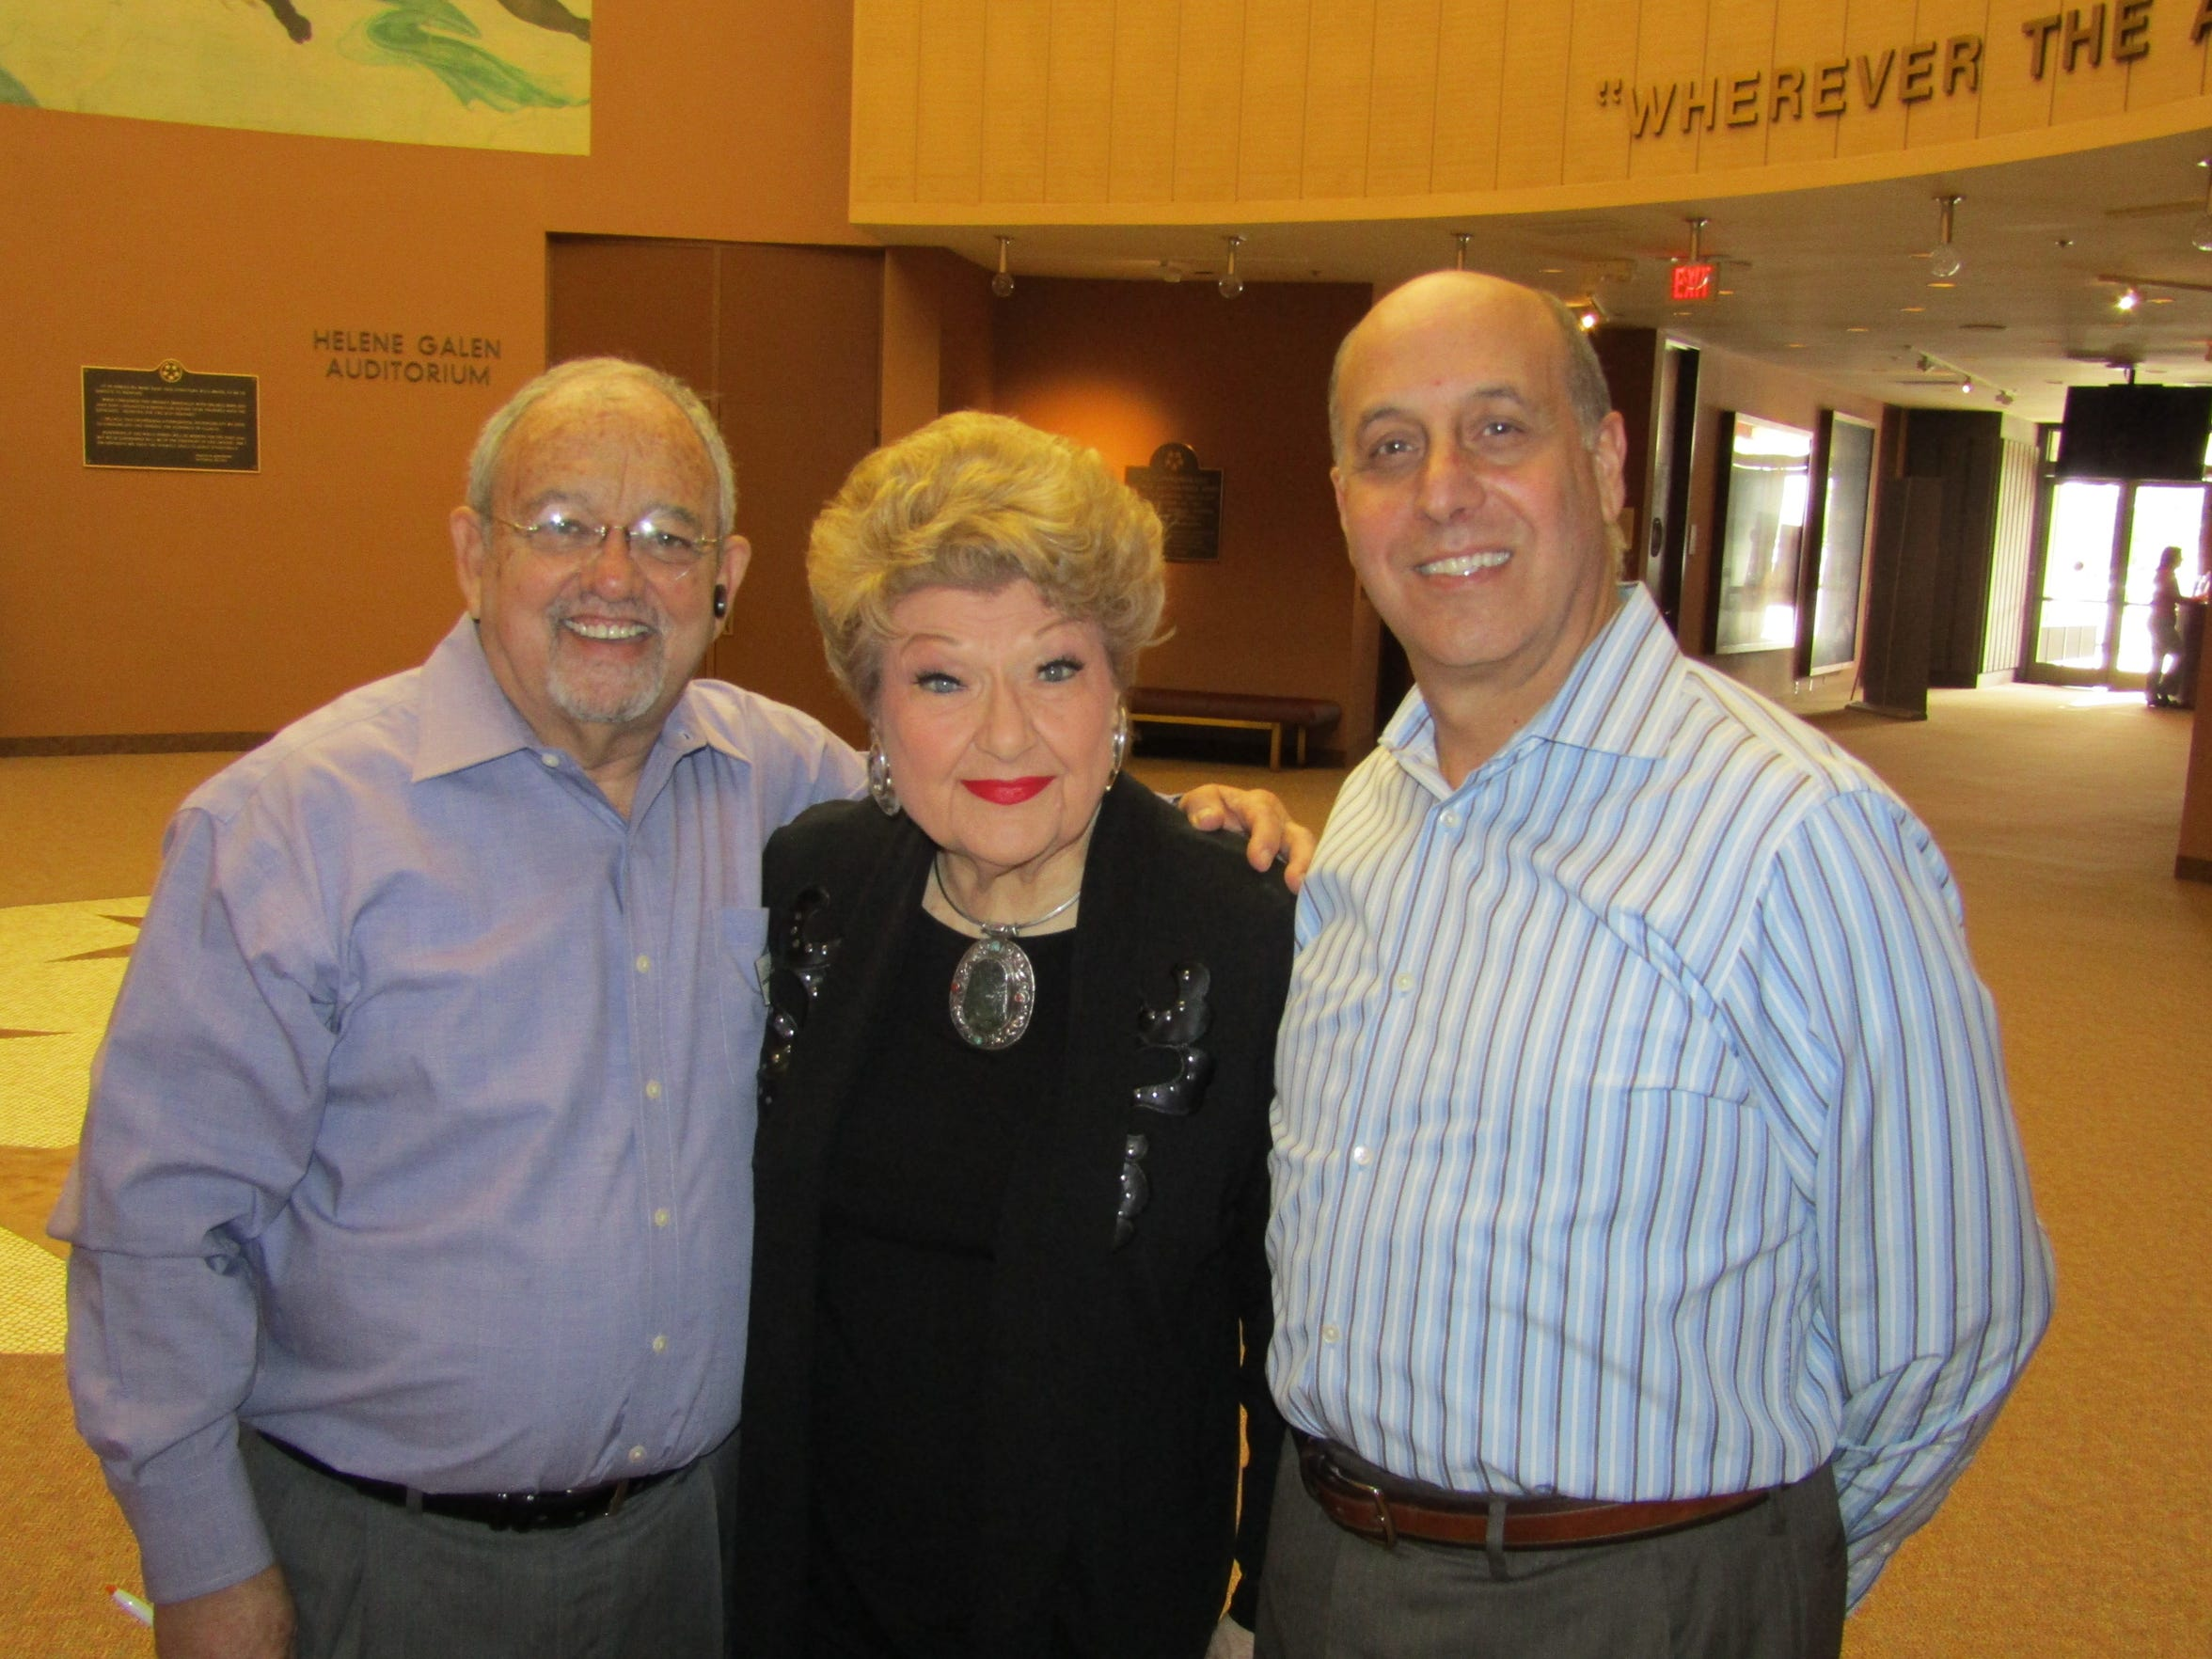 Coachella Valley Repertory Founding Artistic Director Ron Celona appears with CVRep Vice President Sid Craig and jazz vocalist Marilyn Maye. Maye, who supported one of CVRep's monthly Luminary Luncheons in 2016, will perform Oct. 5-6 at Michael Holmes' Purple Room.